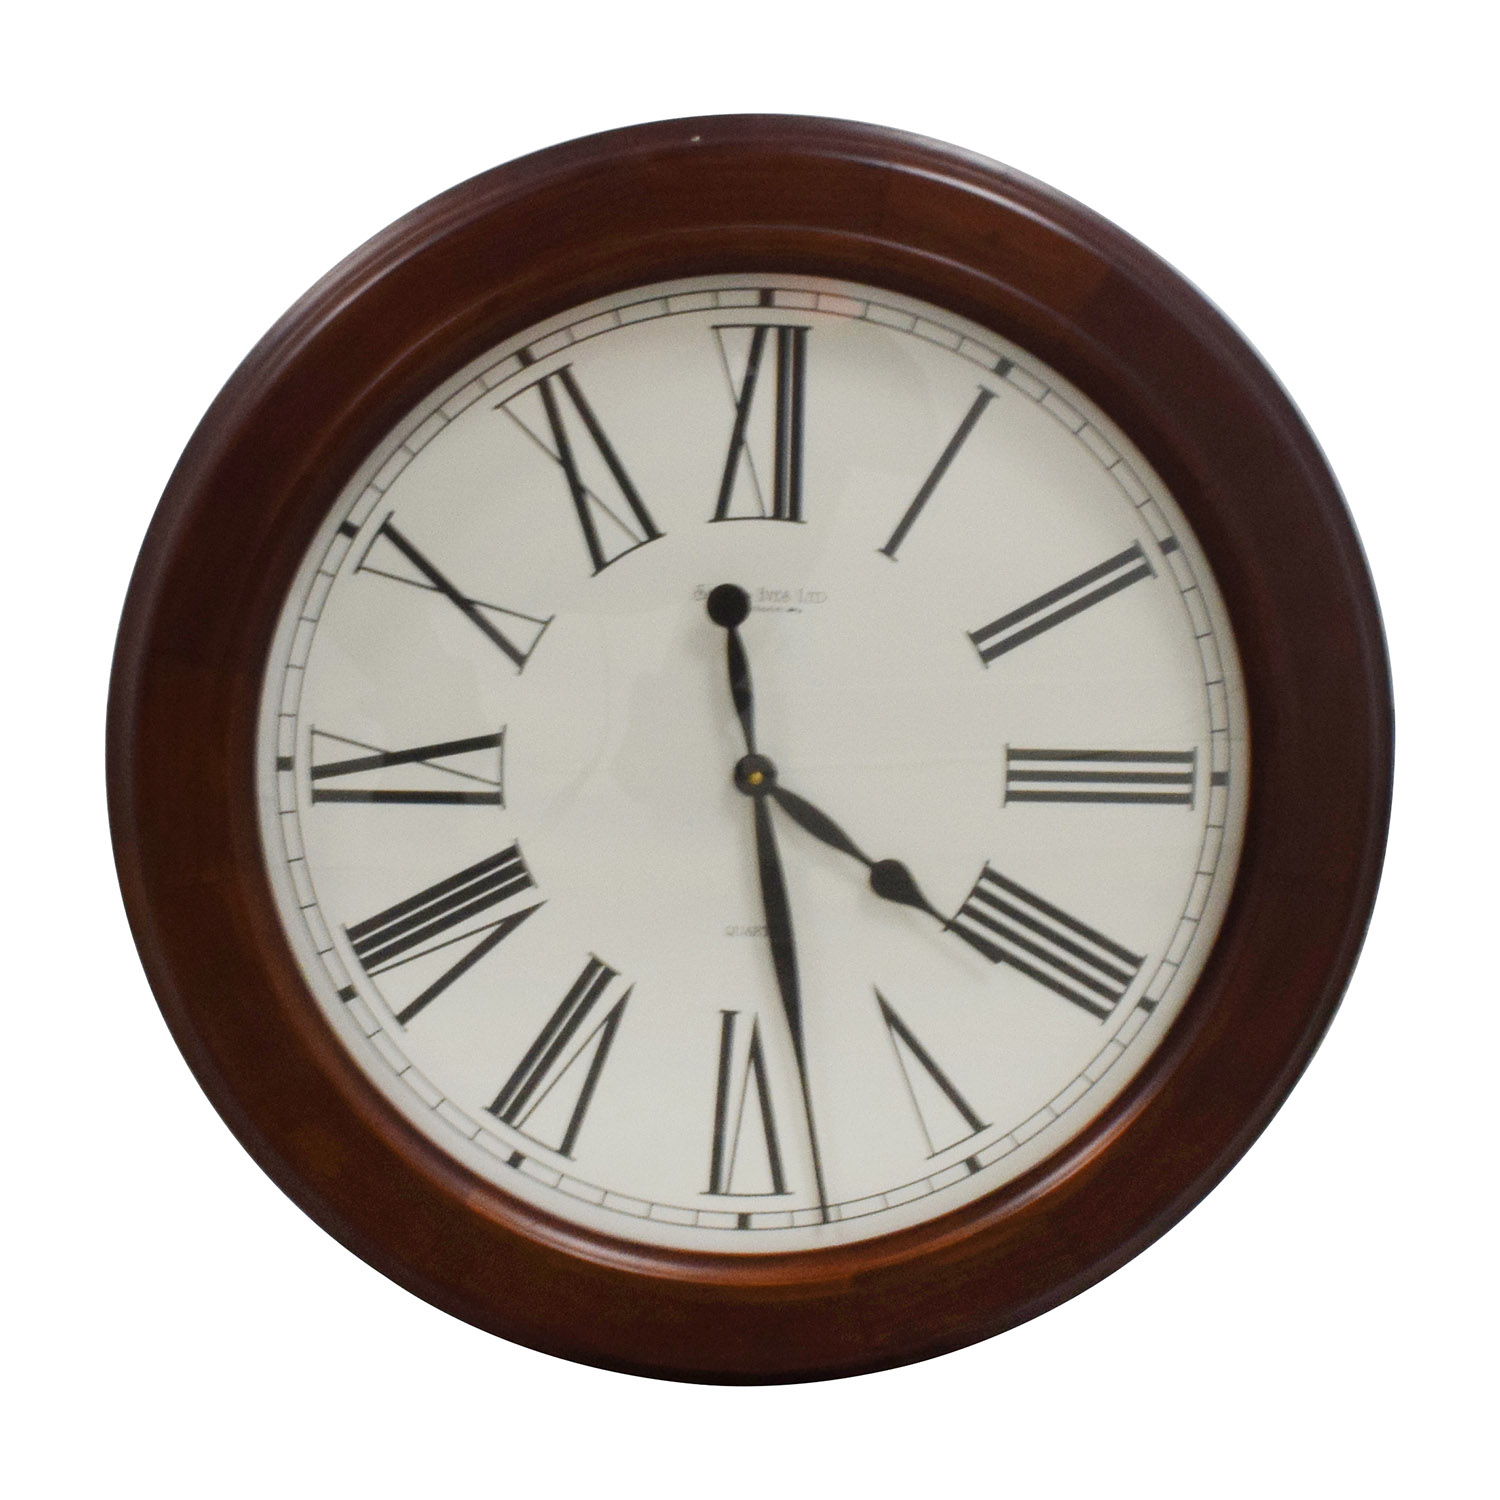 Smith Ives LTD Smith Ives Roman Numeral Clock in Wood Frame Decor